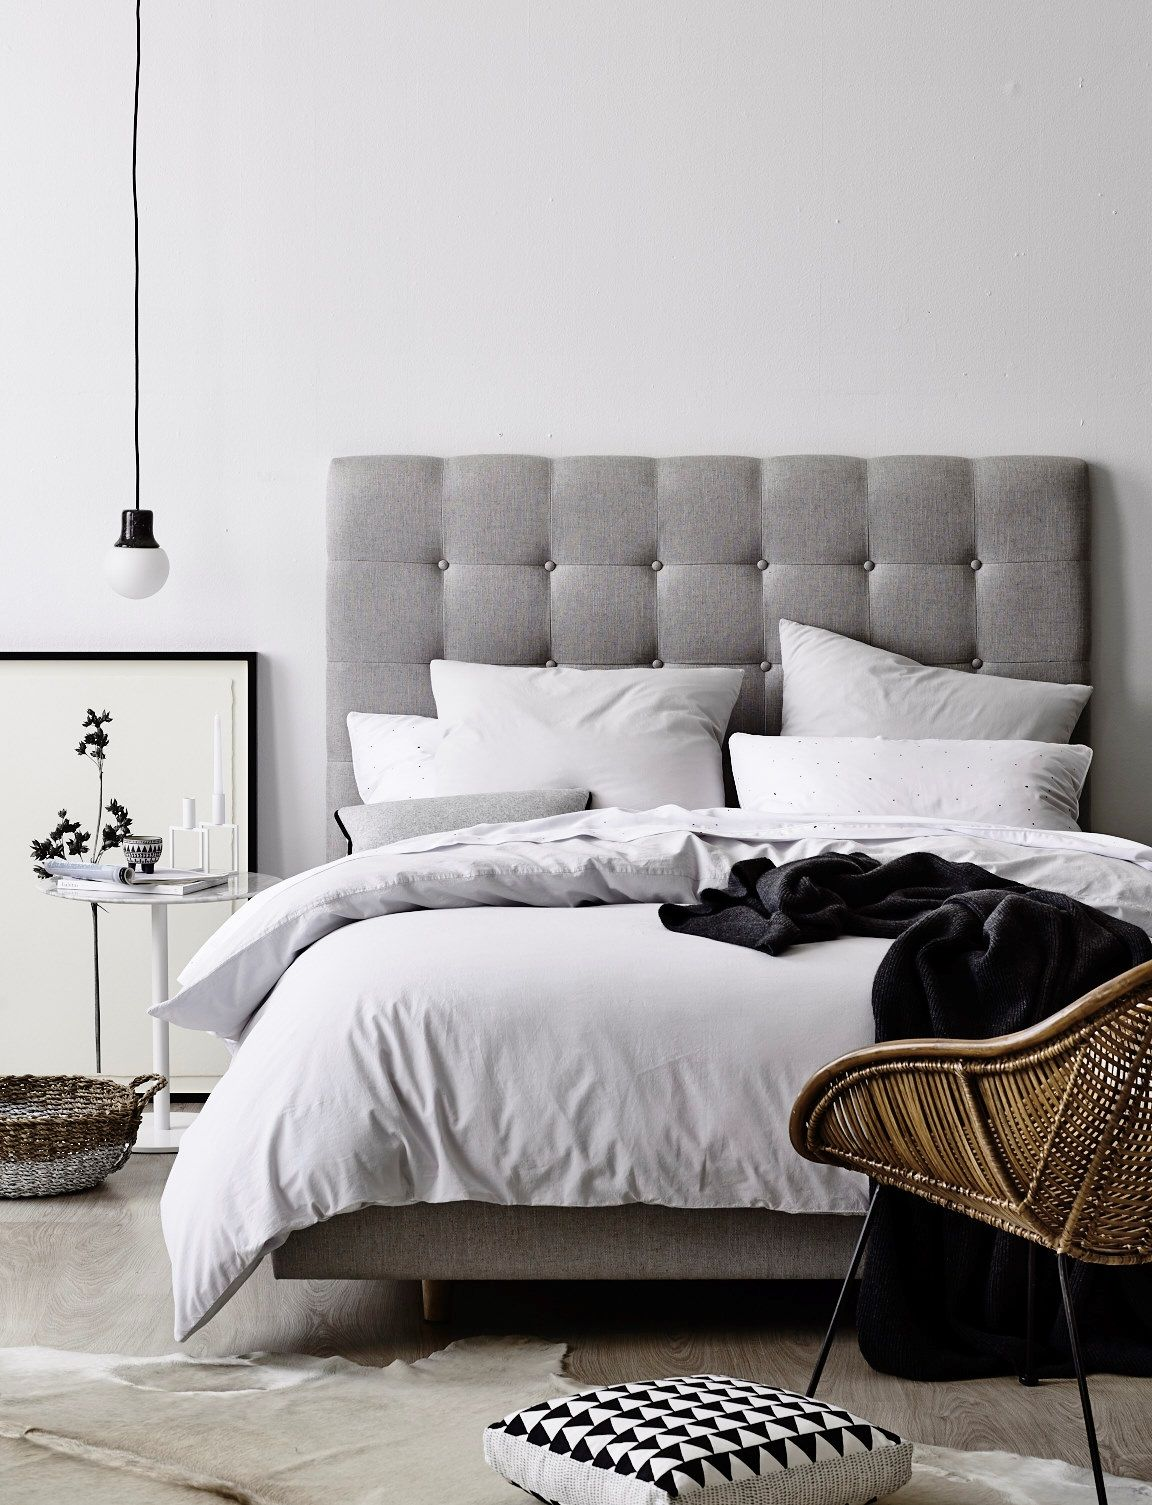 Custom Headboard - Richmond Bedhead  Heatherly Design  Bedroom